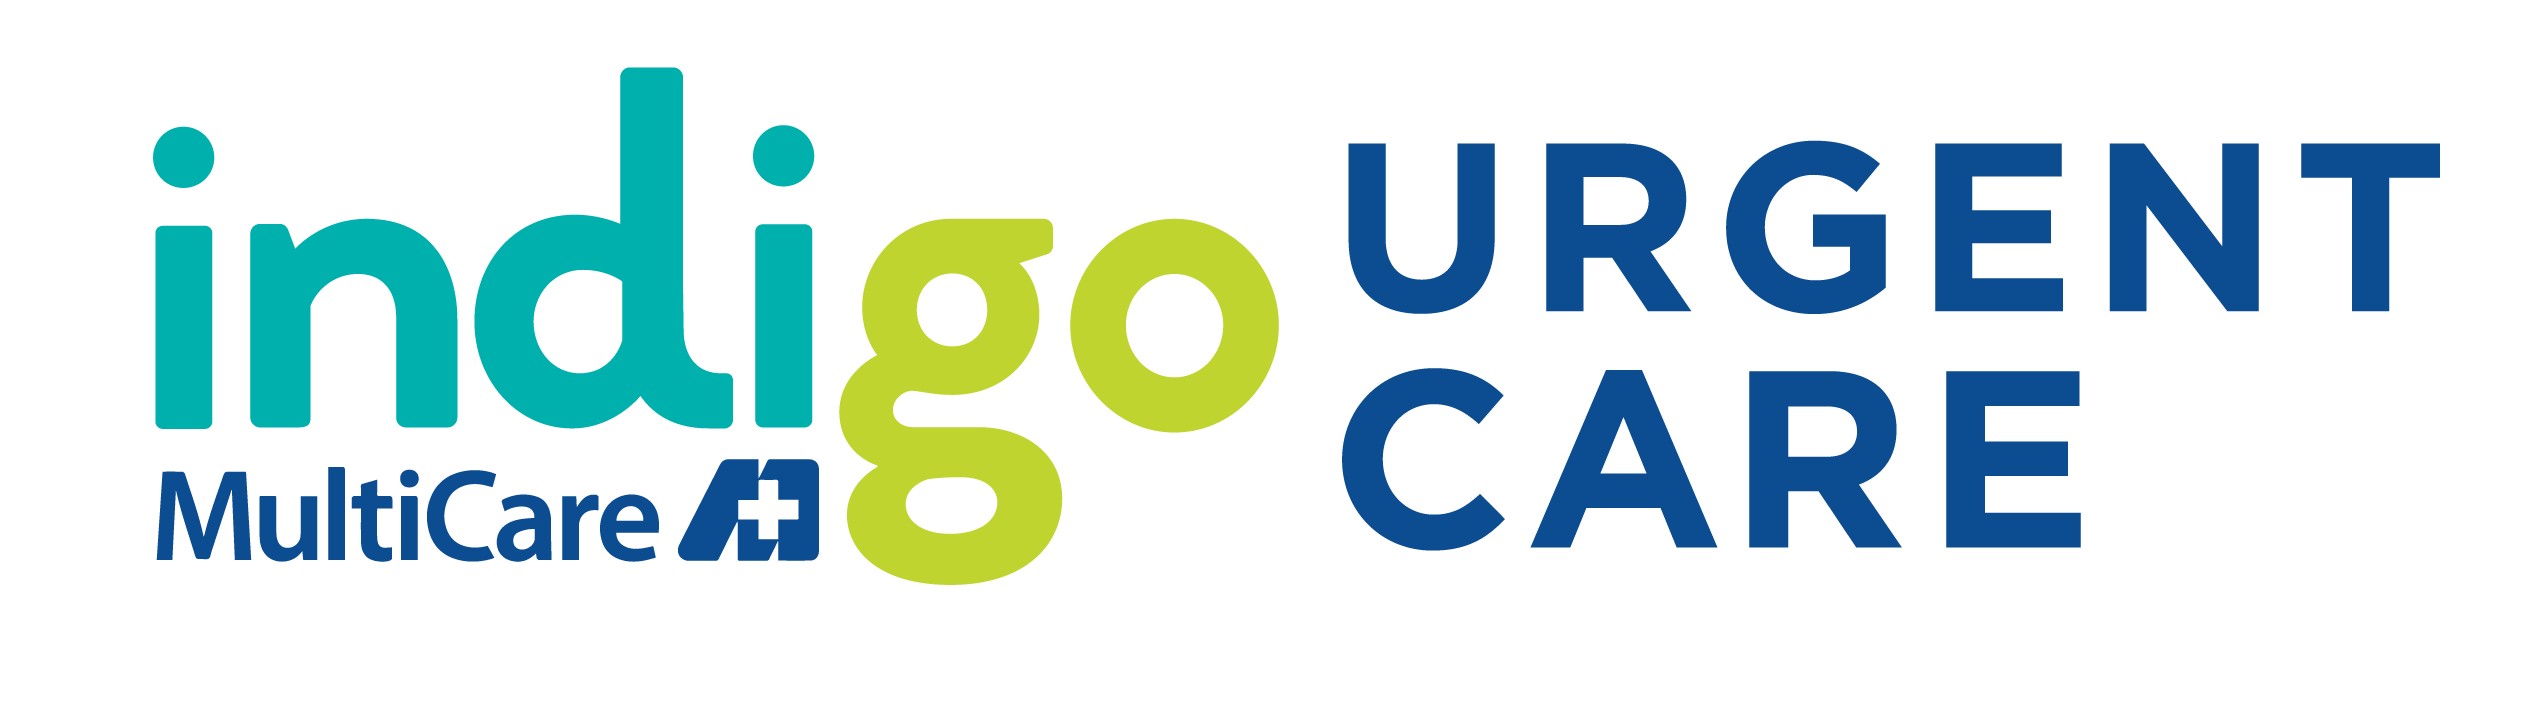 MultiCare Indigo Urgent Care - Mill Creek Logo